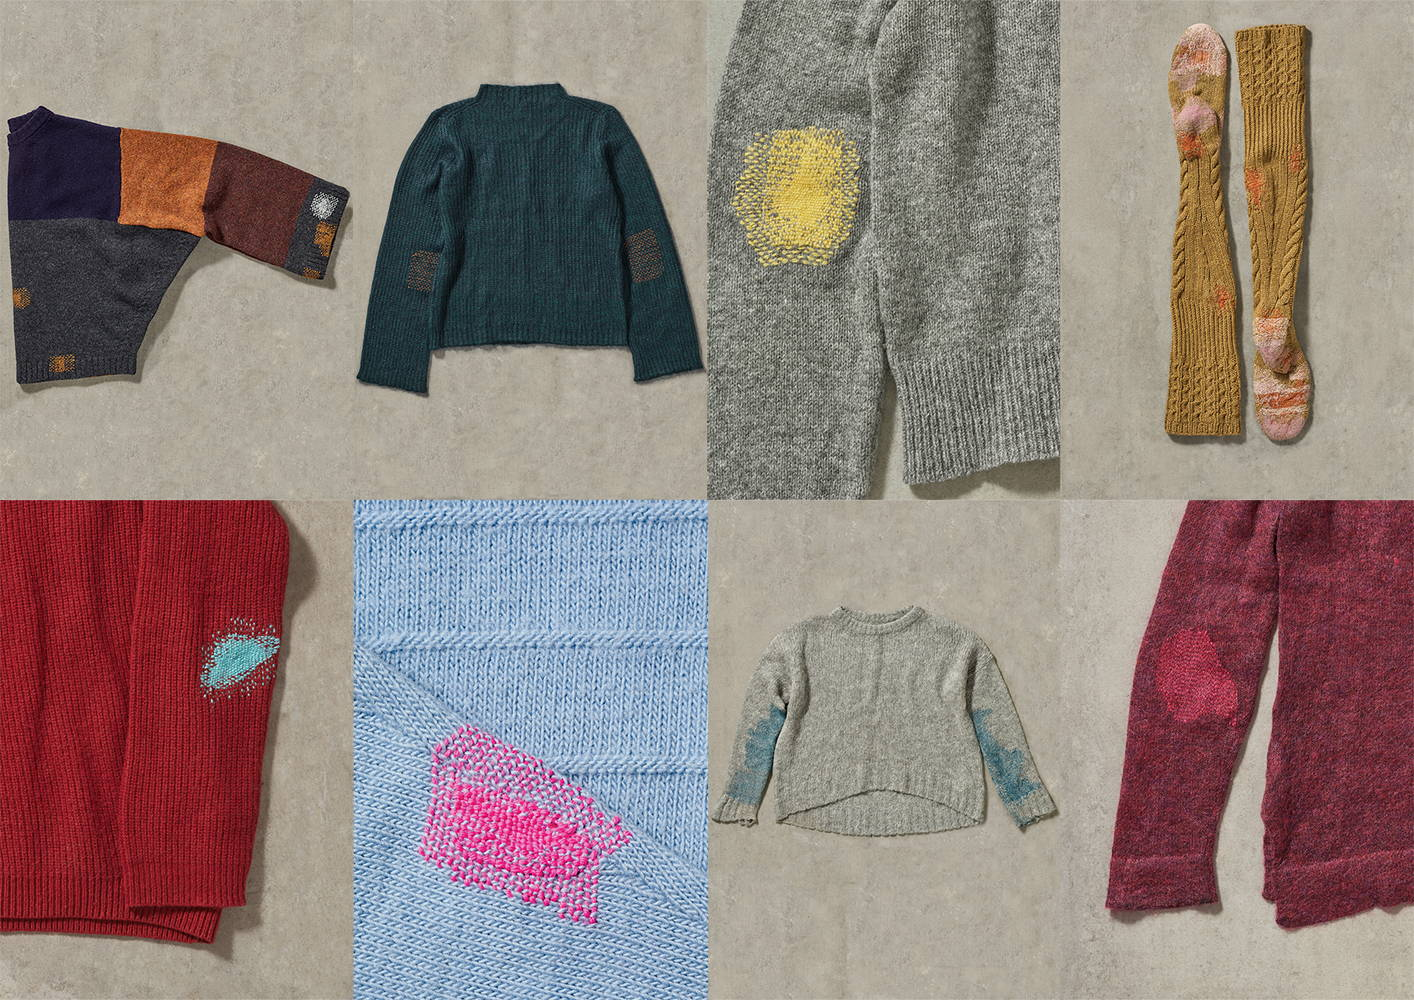 A grid of mended pieces from textile artist Celia Pym.